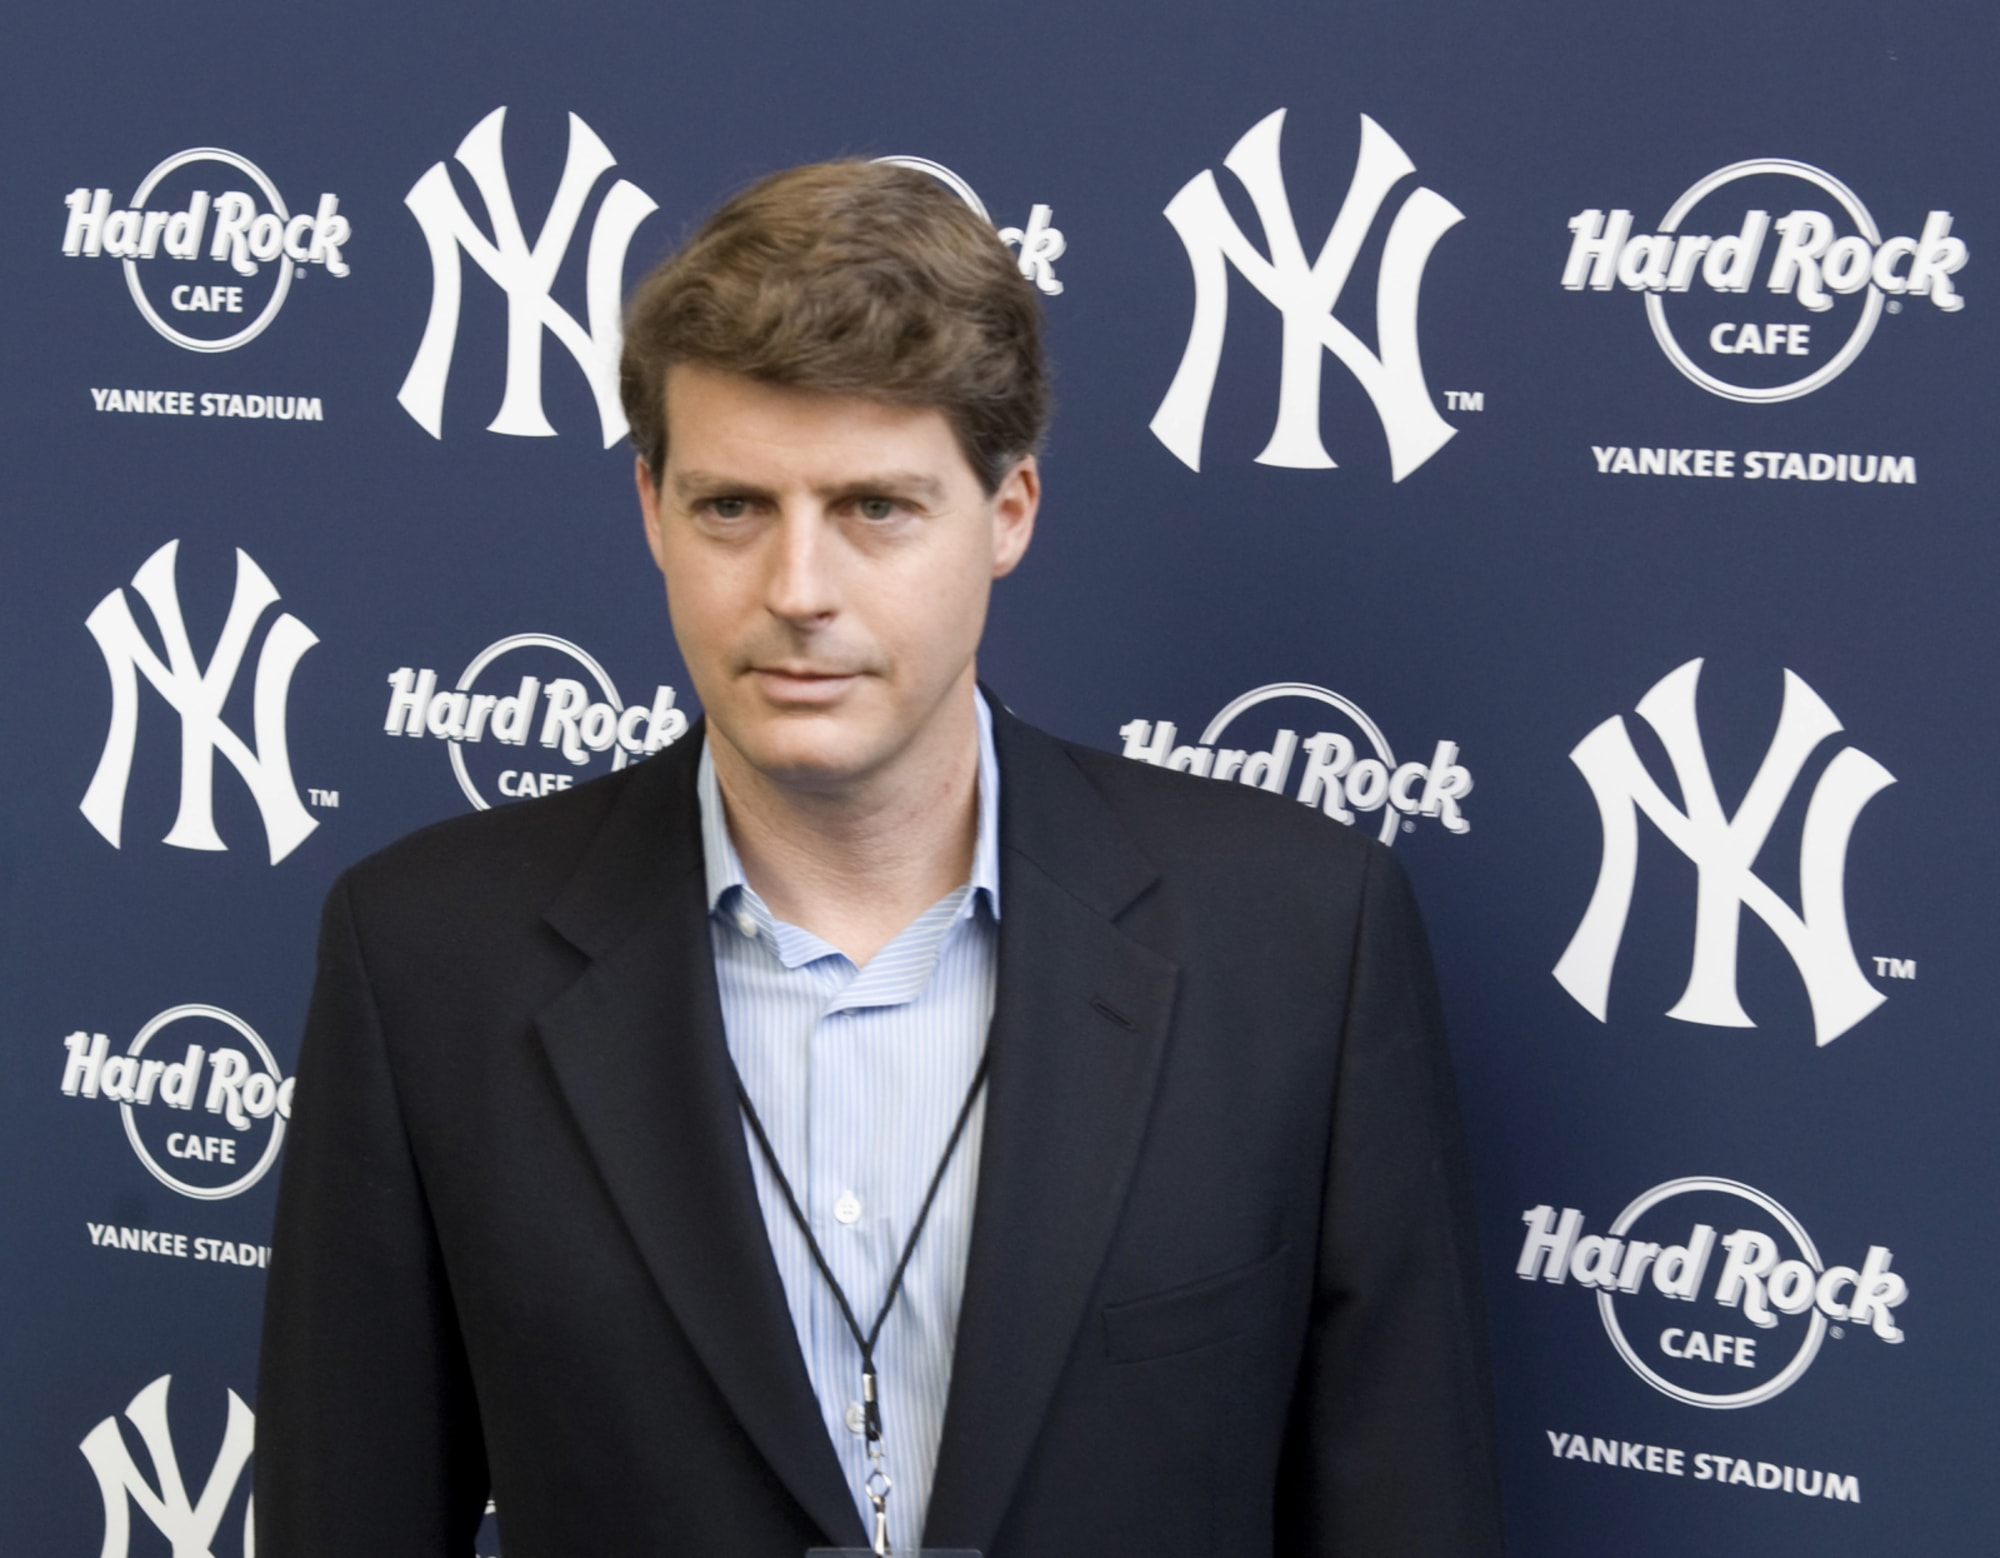 Yankees' supposed payroll restrictions should infuriate fans even more